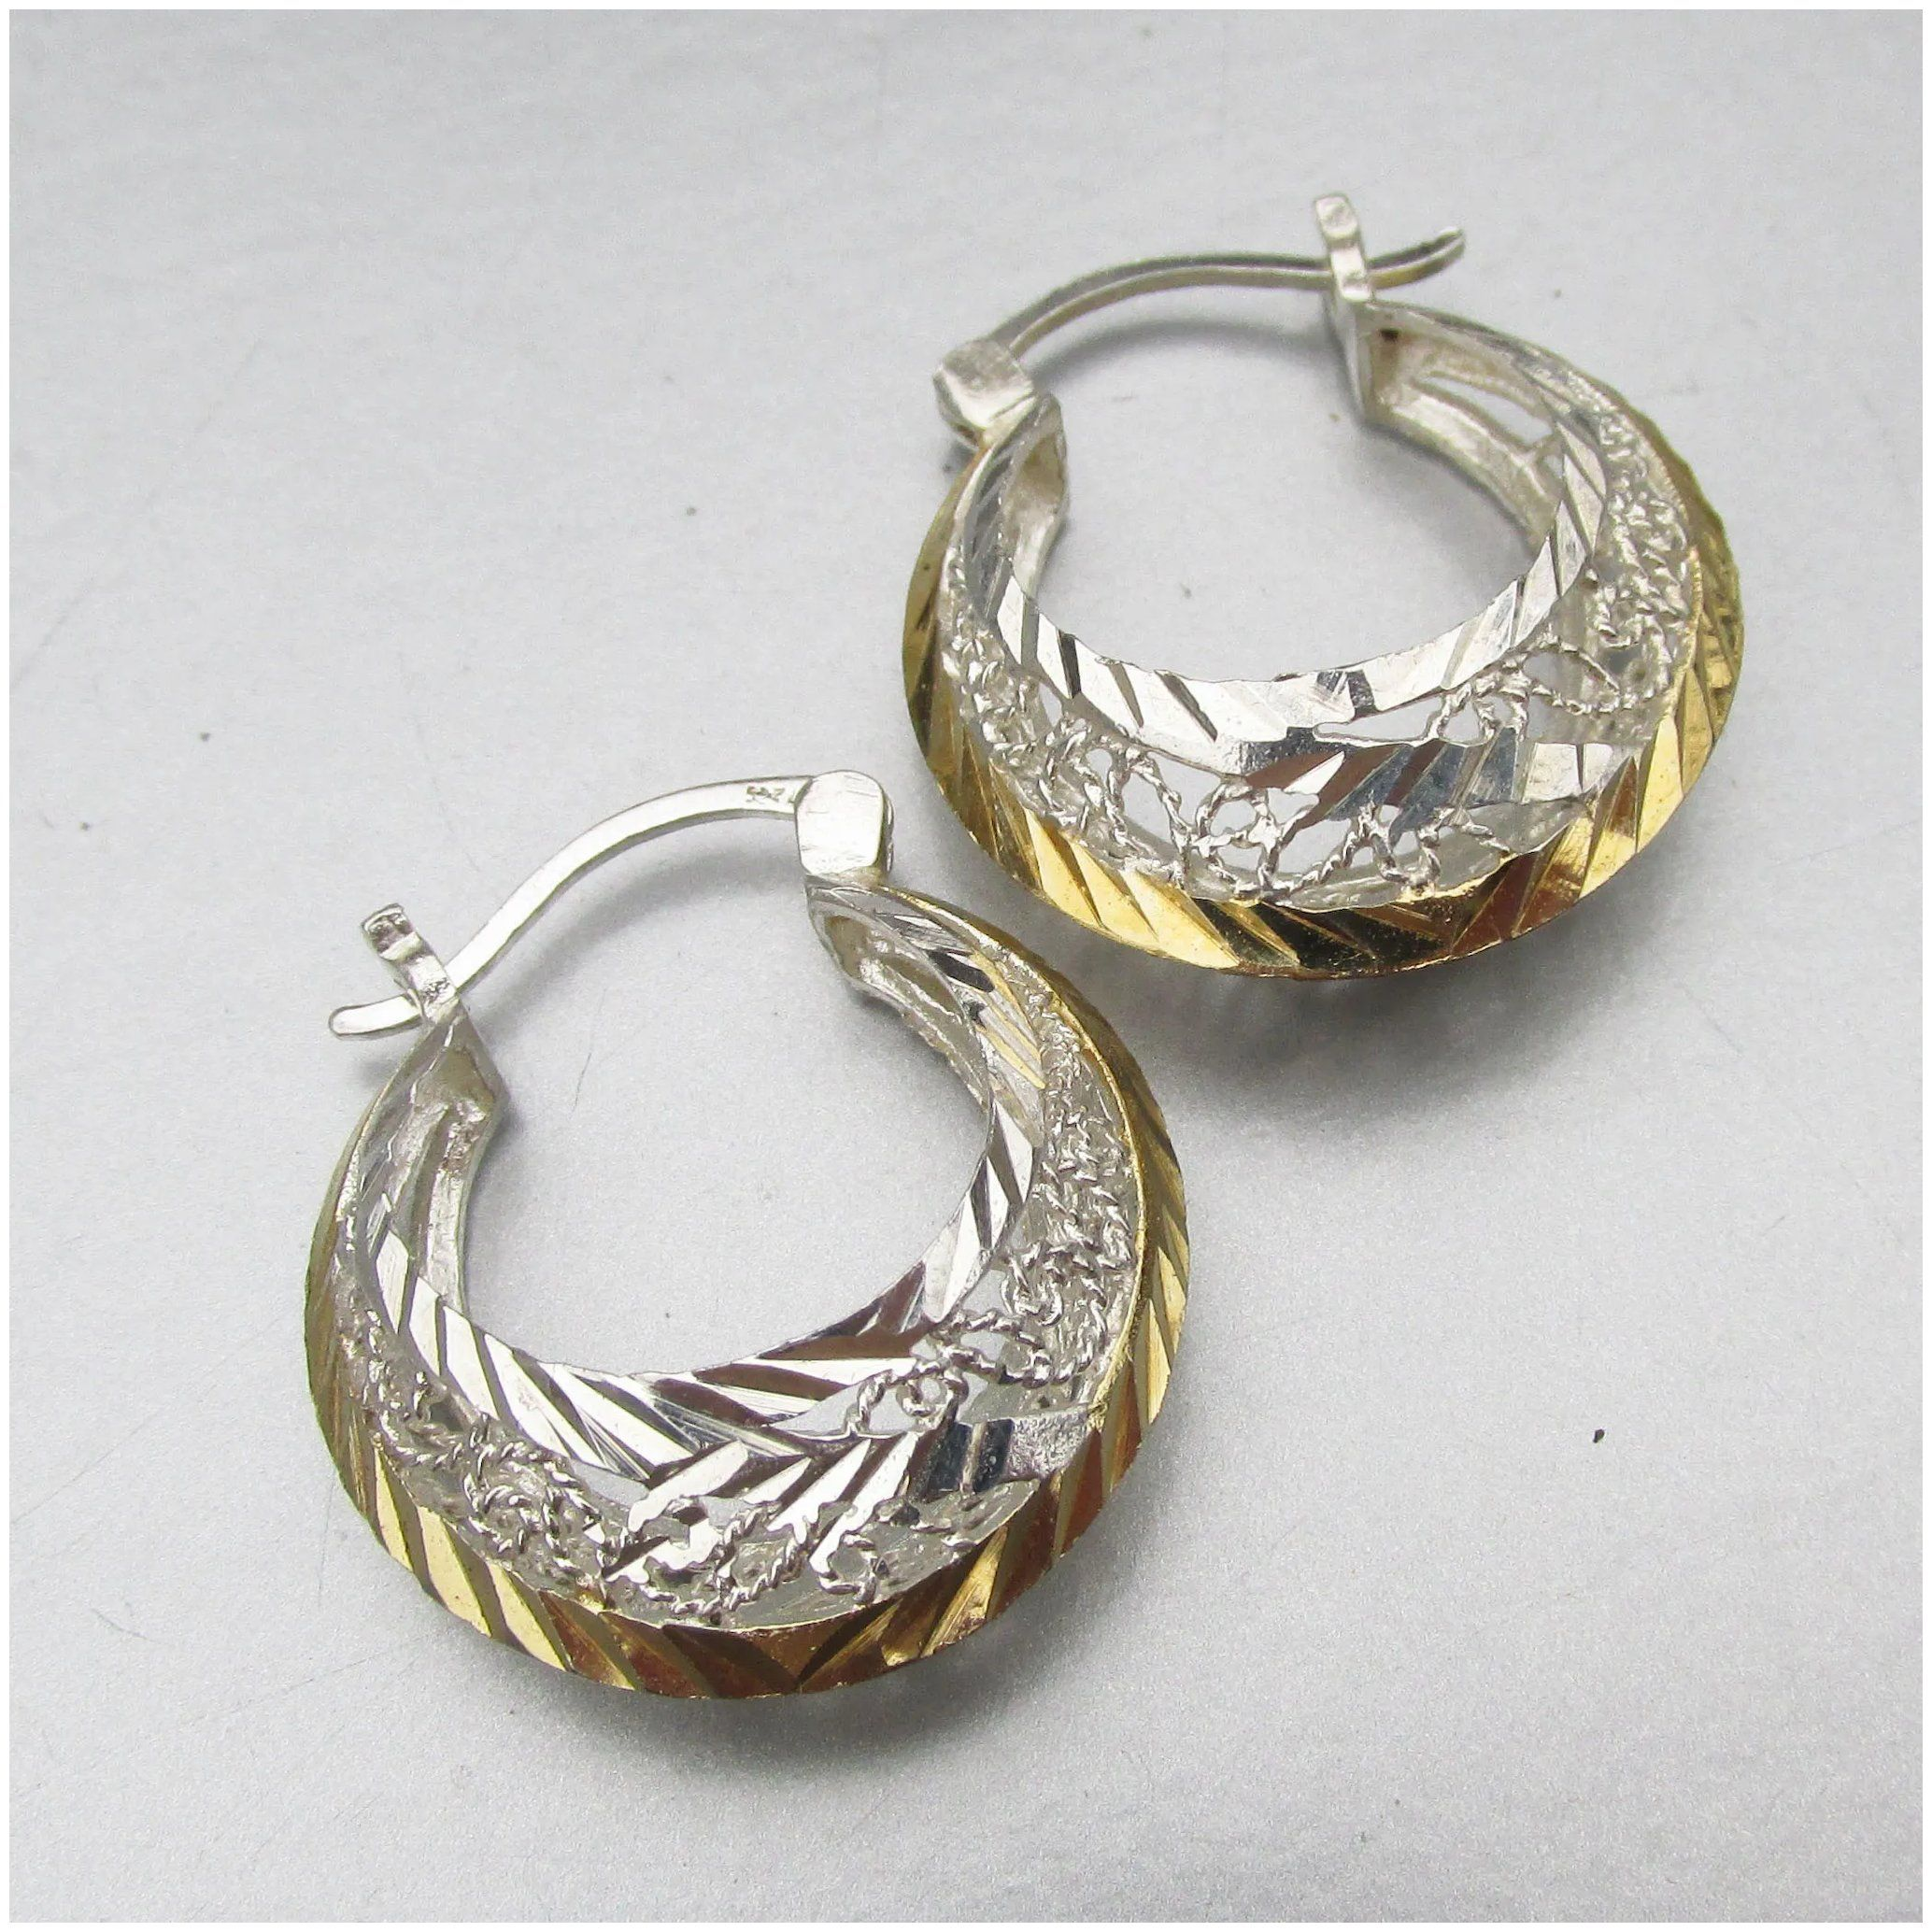 Filigree Sterling 10k Gold Pierced Puffy Hoop Earrings In 2020 Hoop Earrings Filigree Earrings